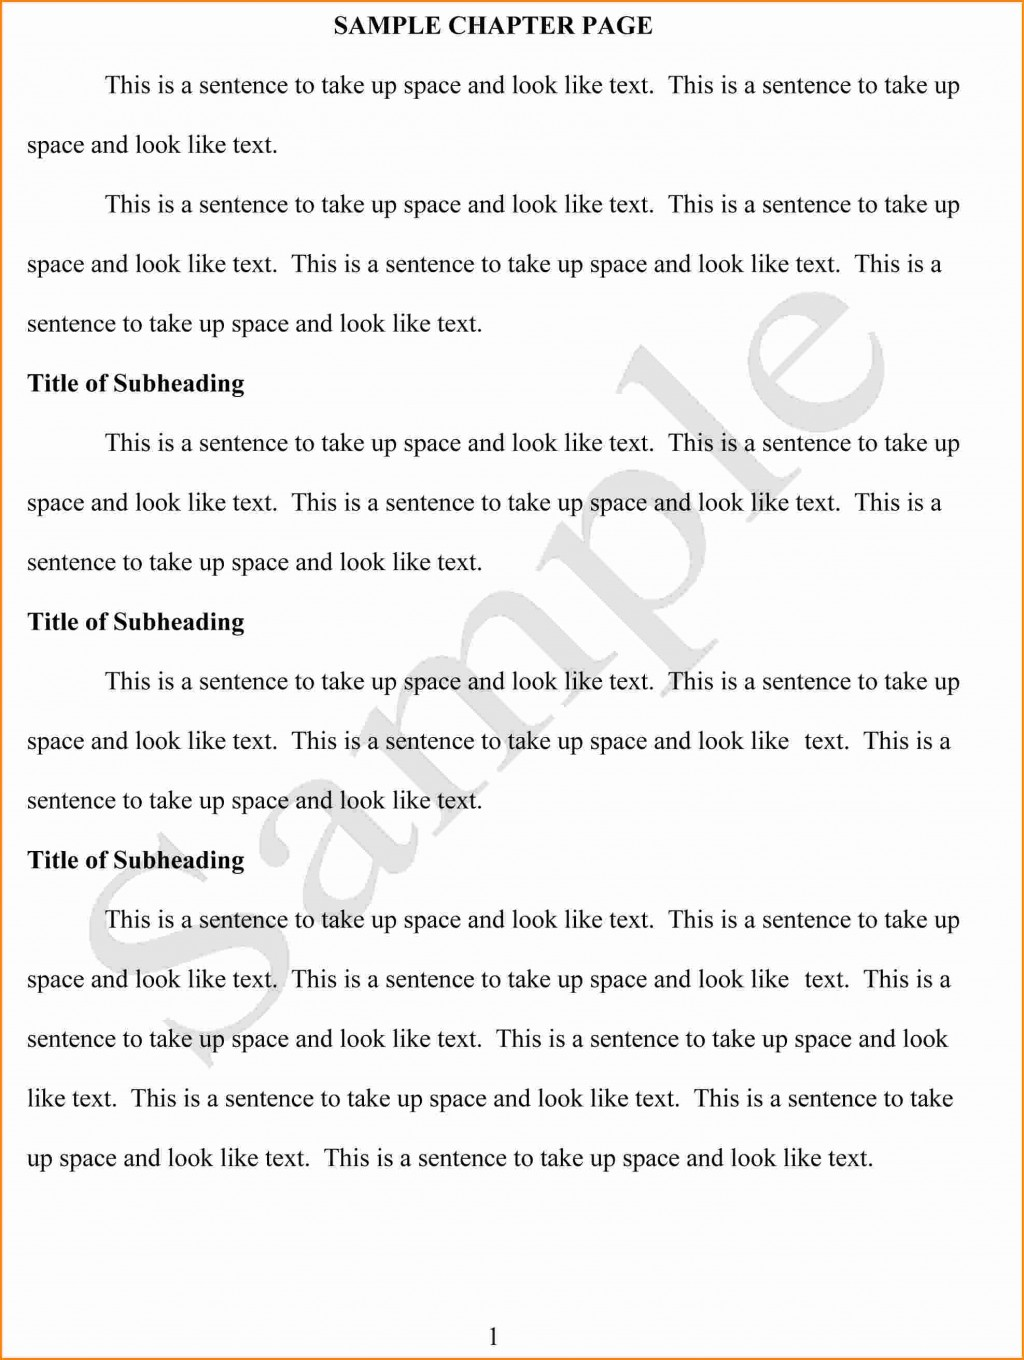 023 Explanatory Essay Example Expository Samples Prompts